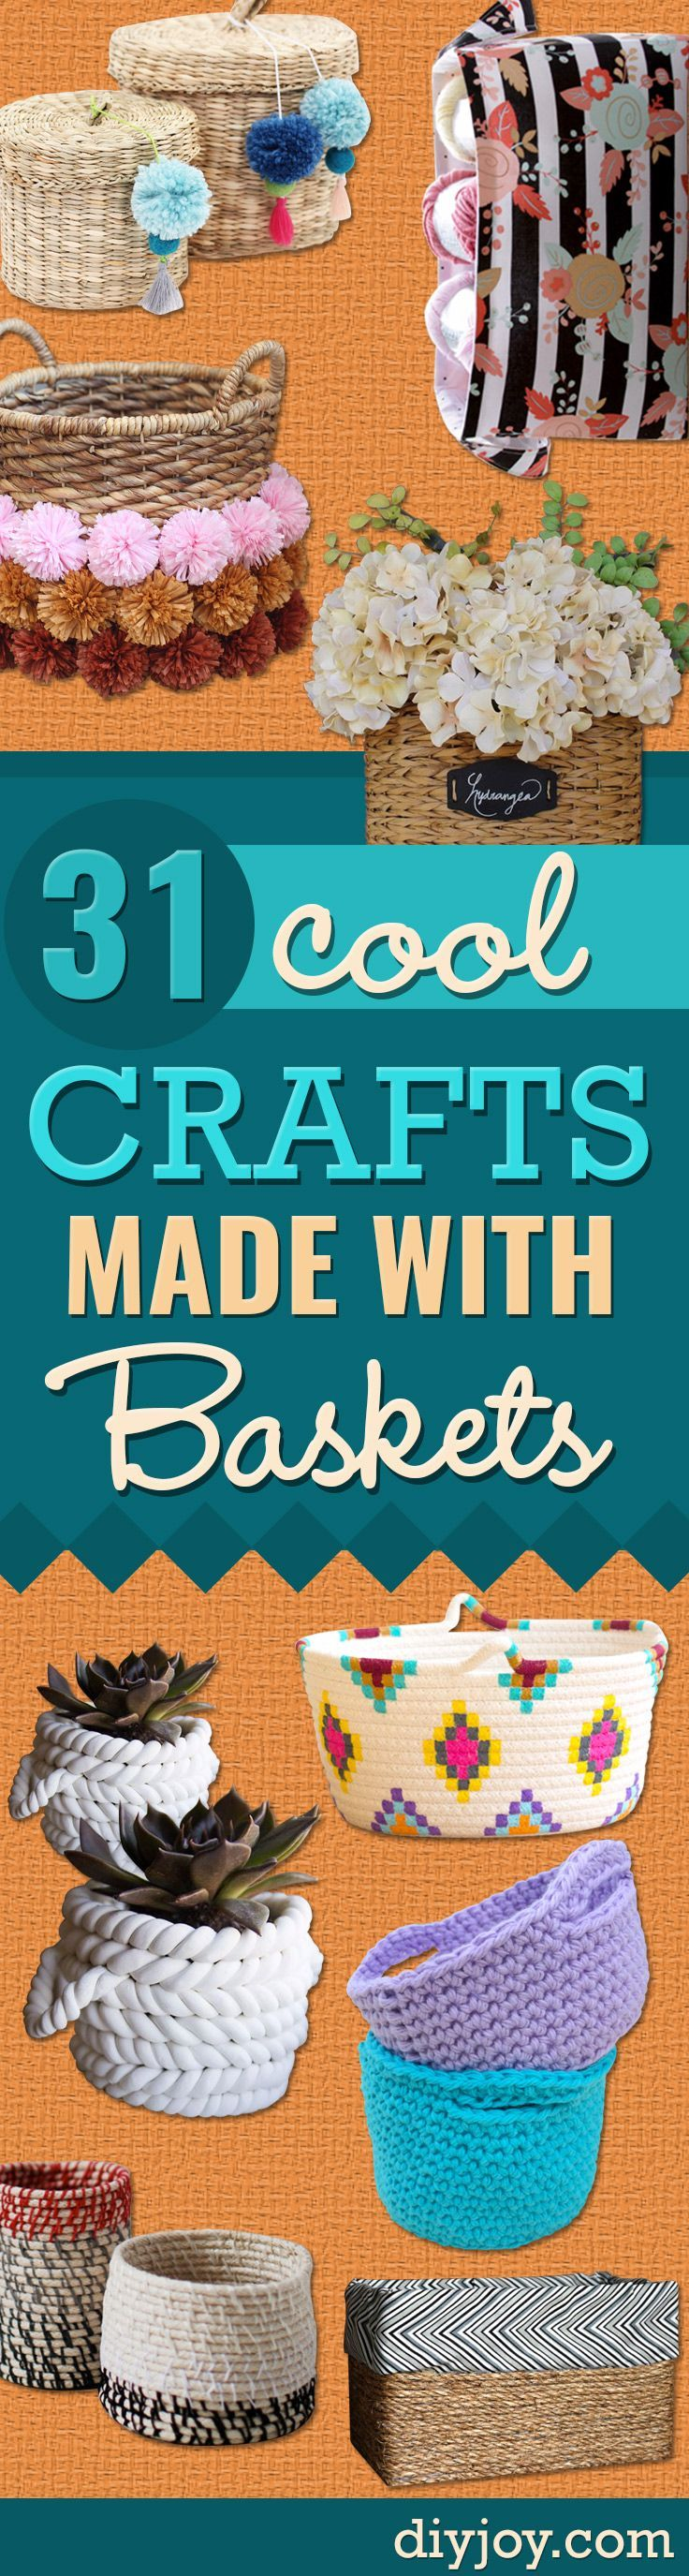 Creative Crafts Made With Baskets - DIY Storage and Organizing Ideas, Gift Baske...